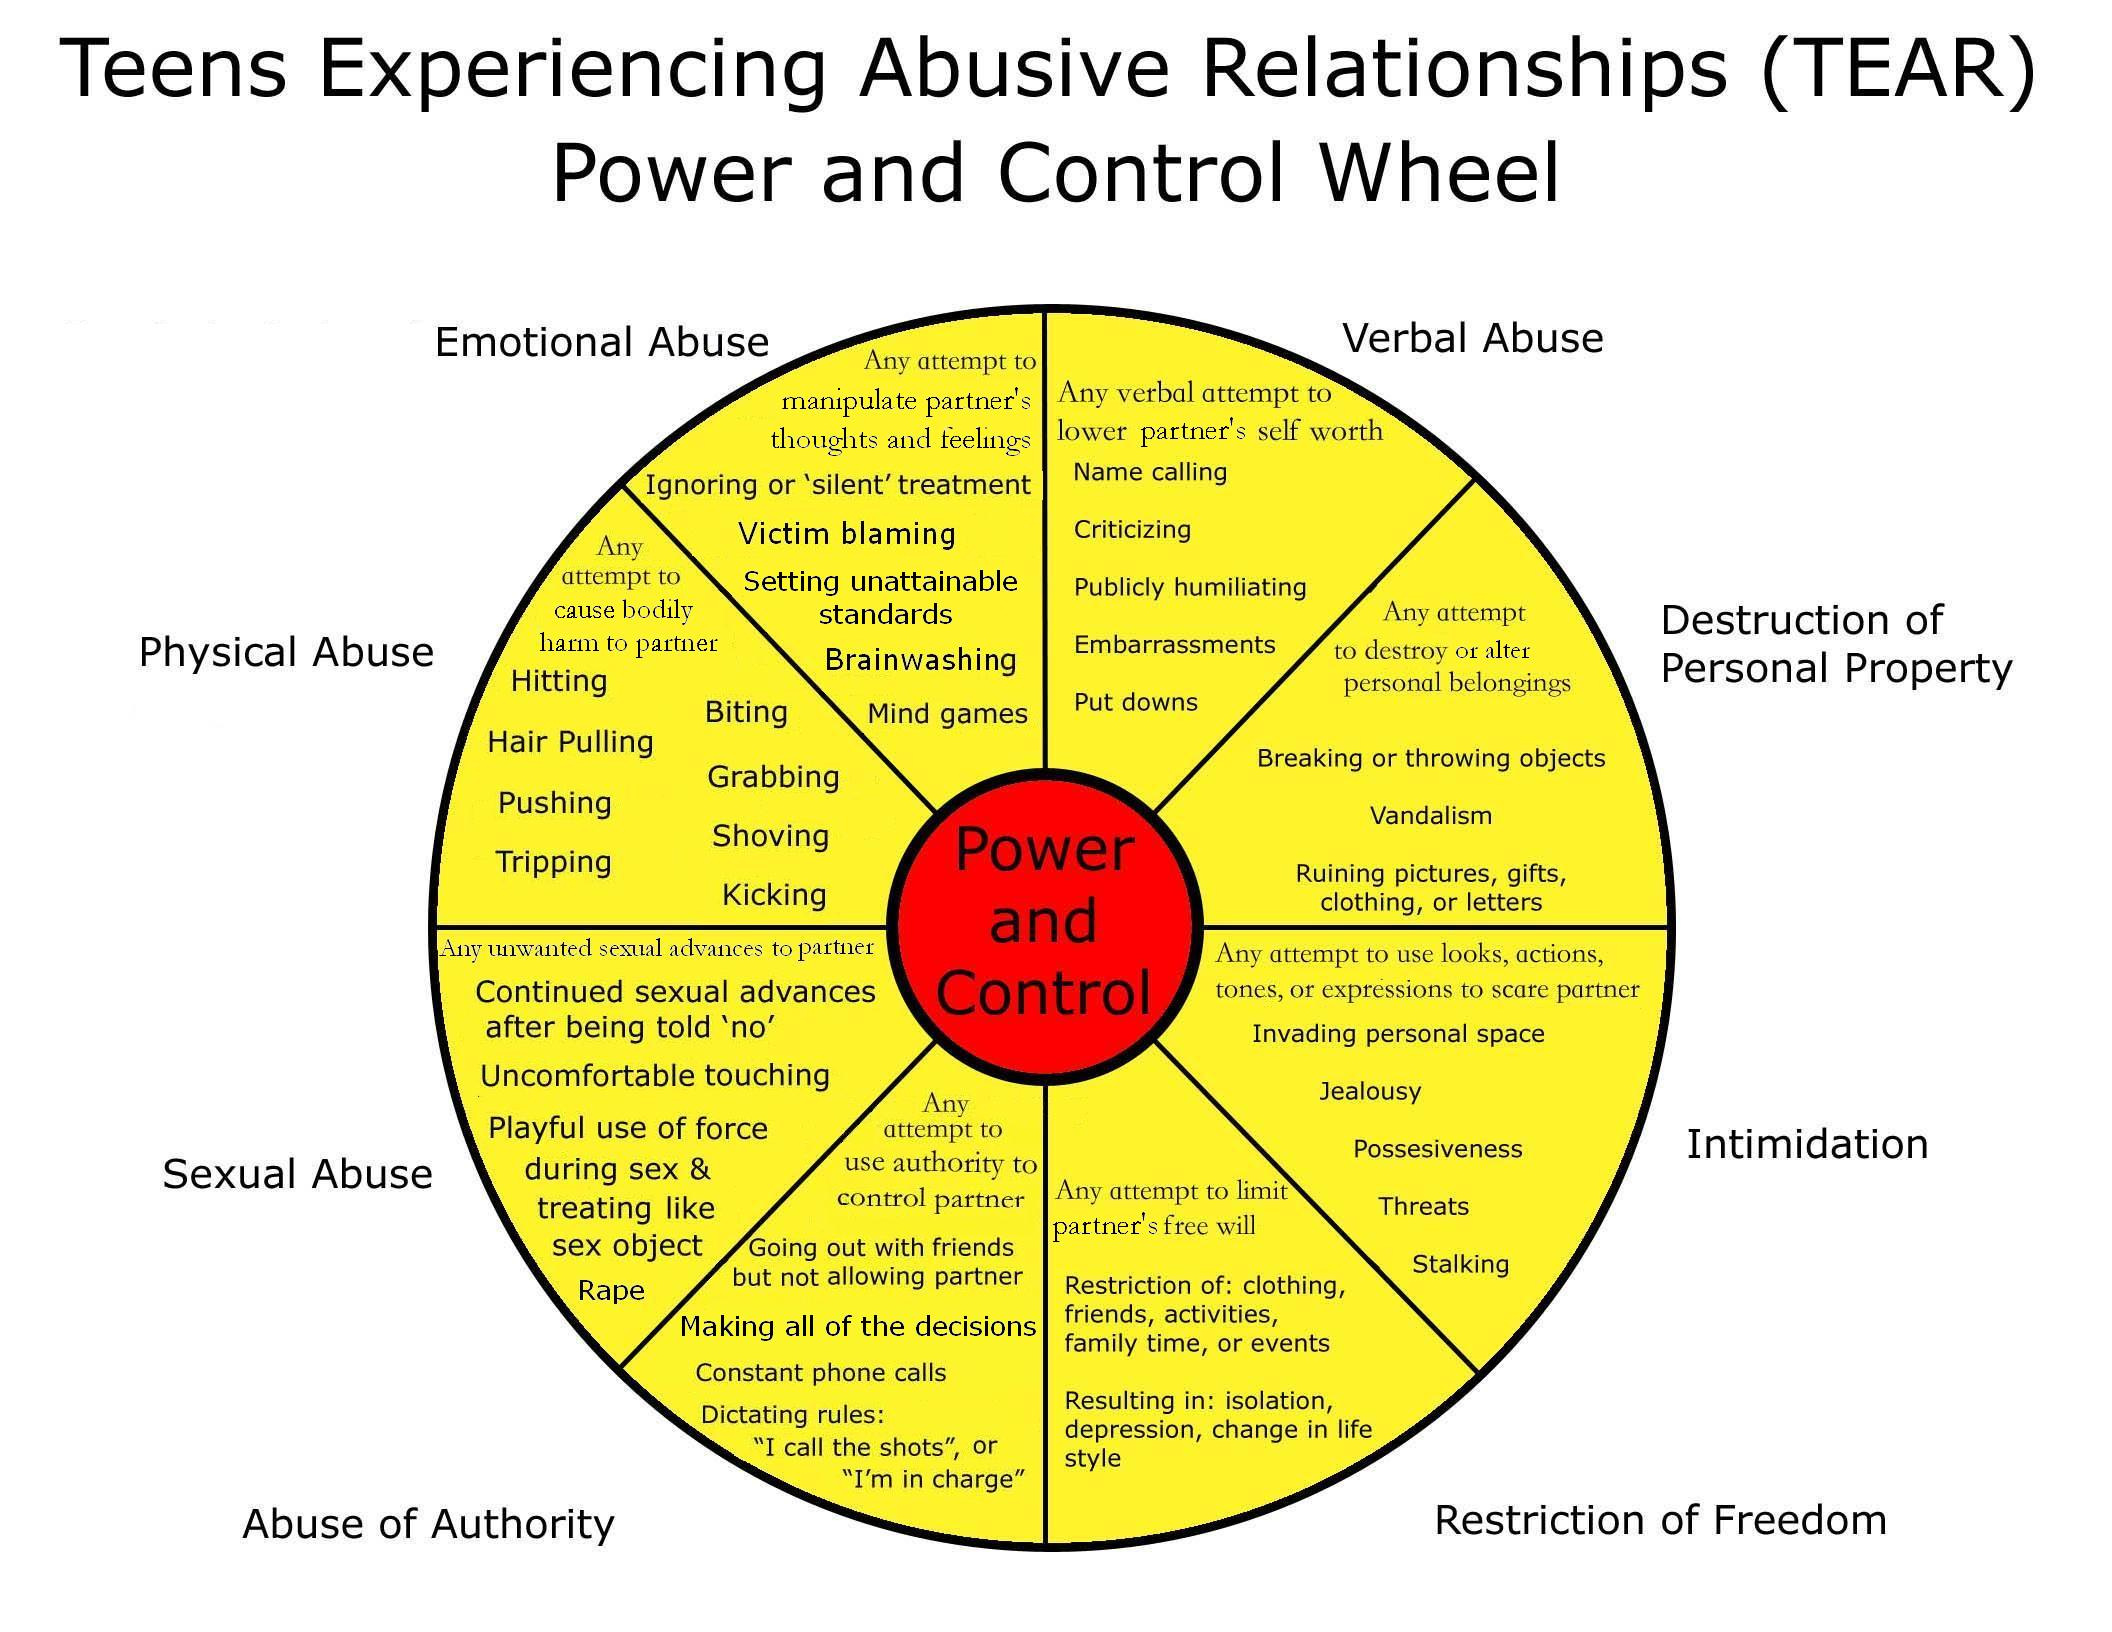 types dating abuse In situations of dating violence, one partner tries to exert power and control over the other partner through physical abuse or sexual assault emotional abuse is commonly present alongside the physical abuse or sexual abuse that takes place.